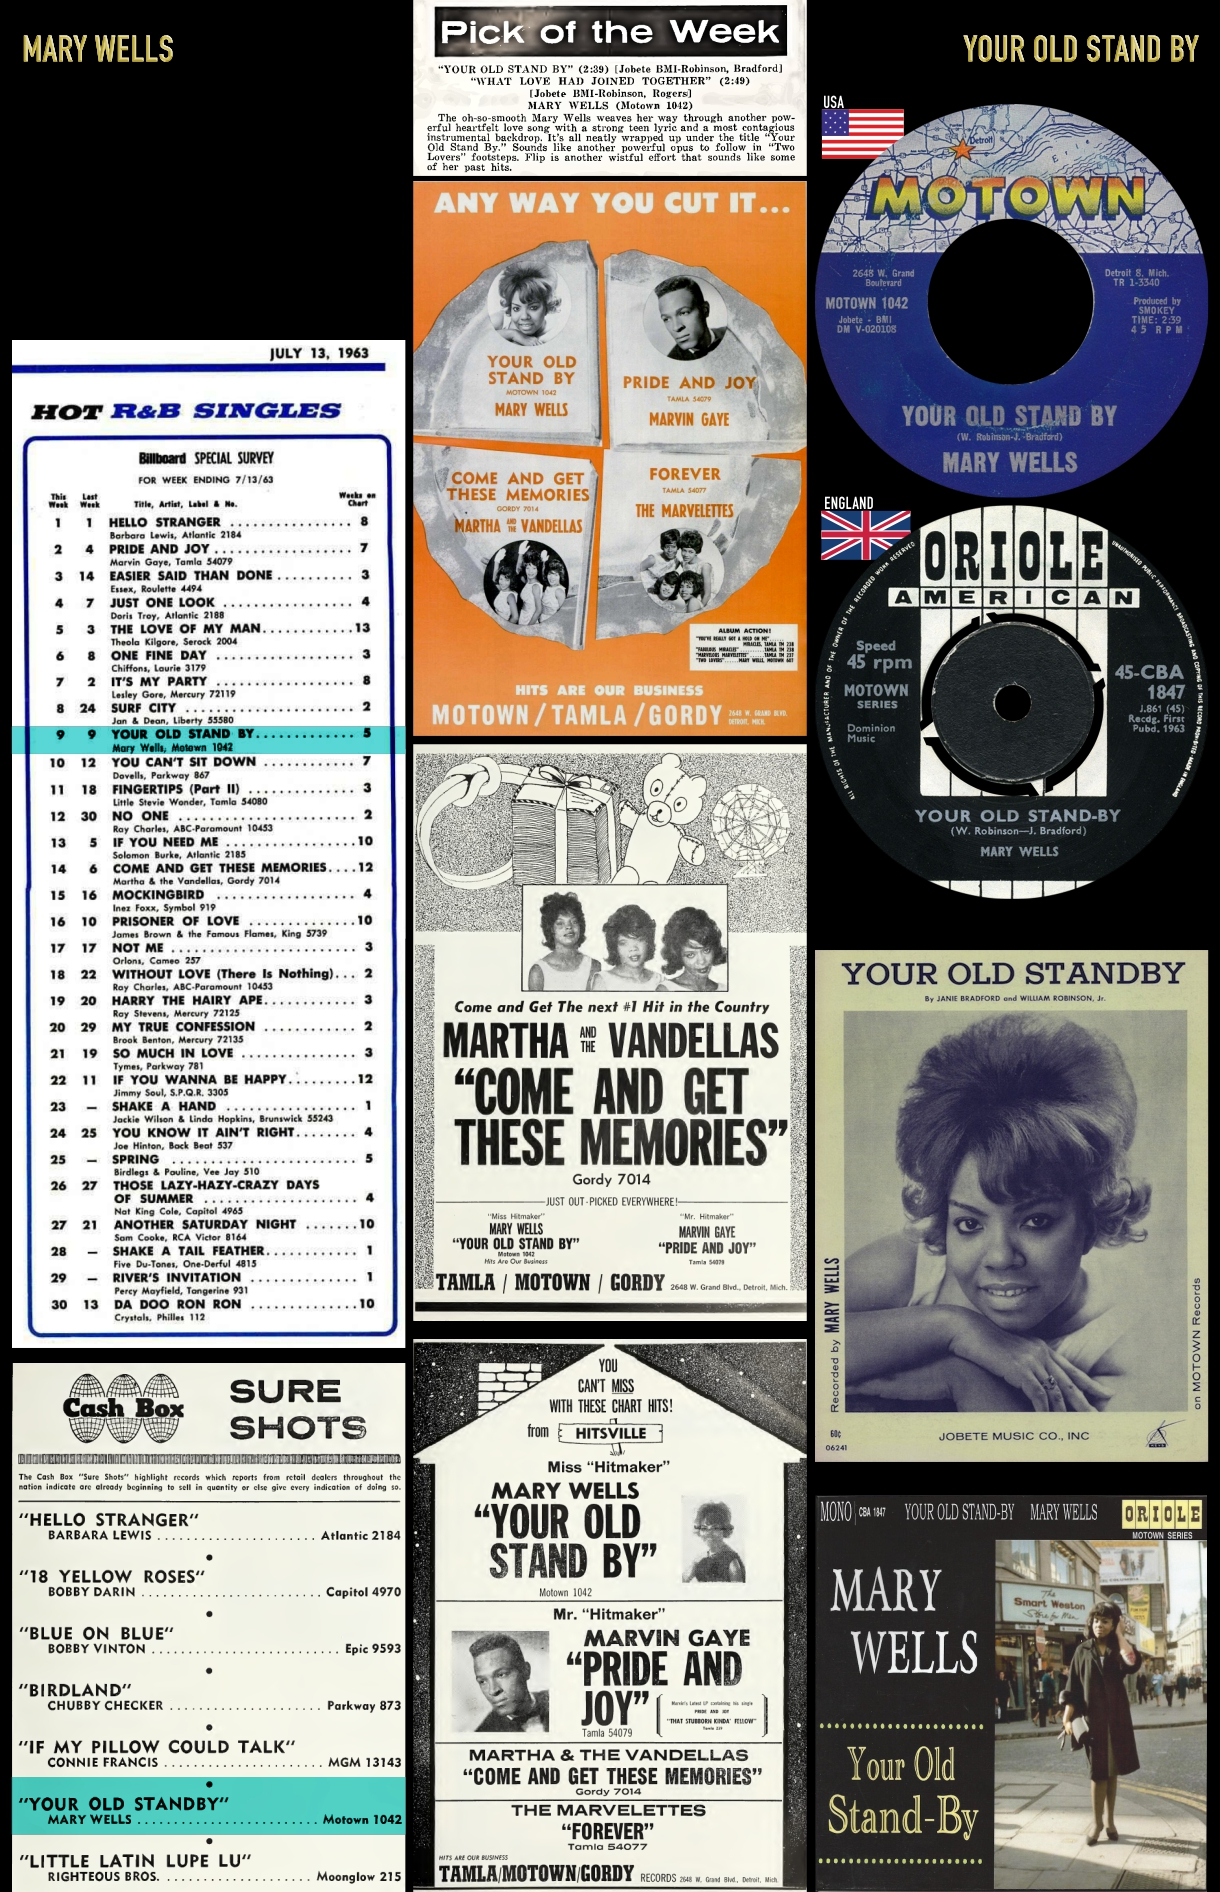 630525_Mary Wells_Your Old Stand By